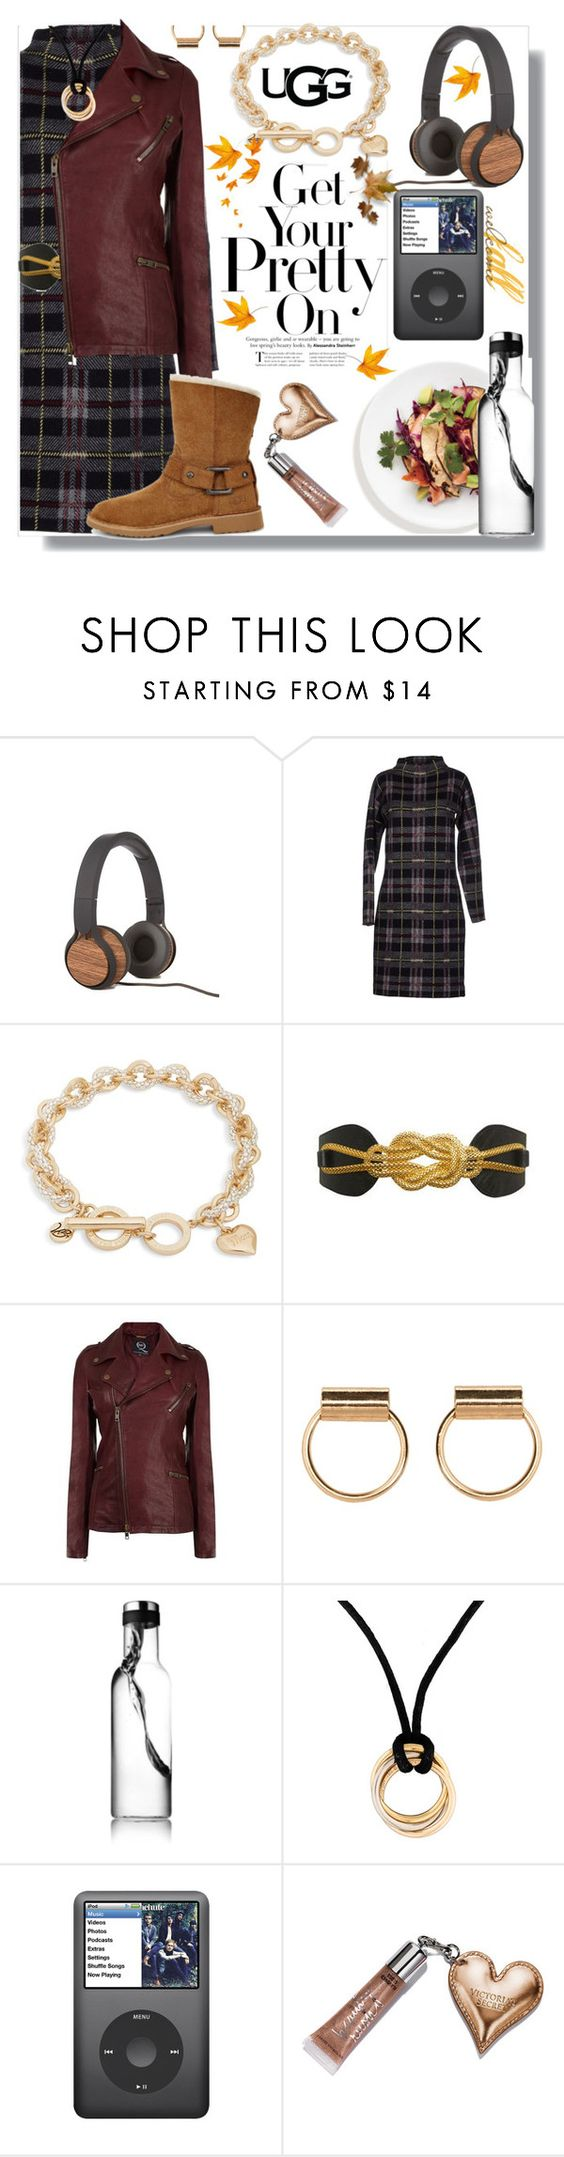 """I'm bringing sexy back"" by carleen1978 ❤ liked on Polyvore featuring Joseph, Vera Bradley, Arden B., McQ by Alexander McQueen, UGG, Minimal, Cartier and Beauty Rush"